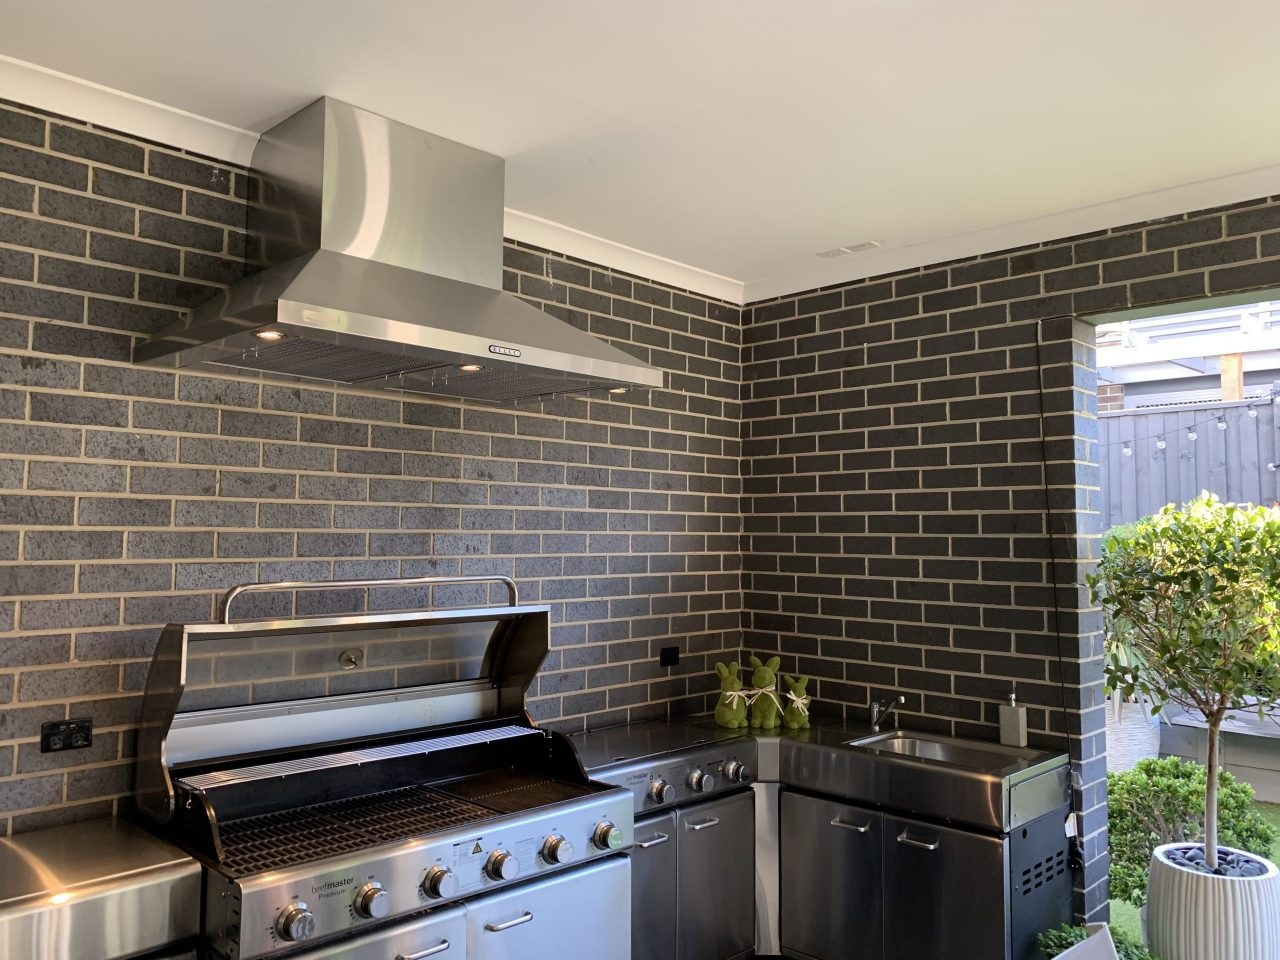 The Reasons Why Every Kitchen Should Have a Rangehood.